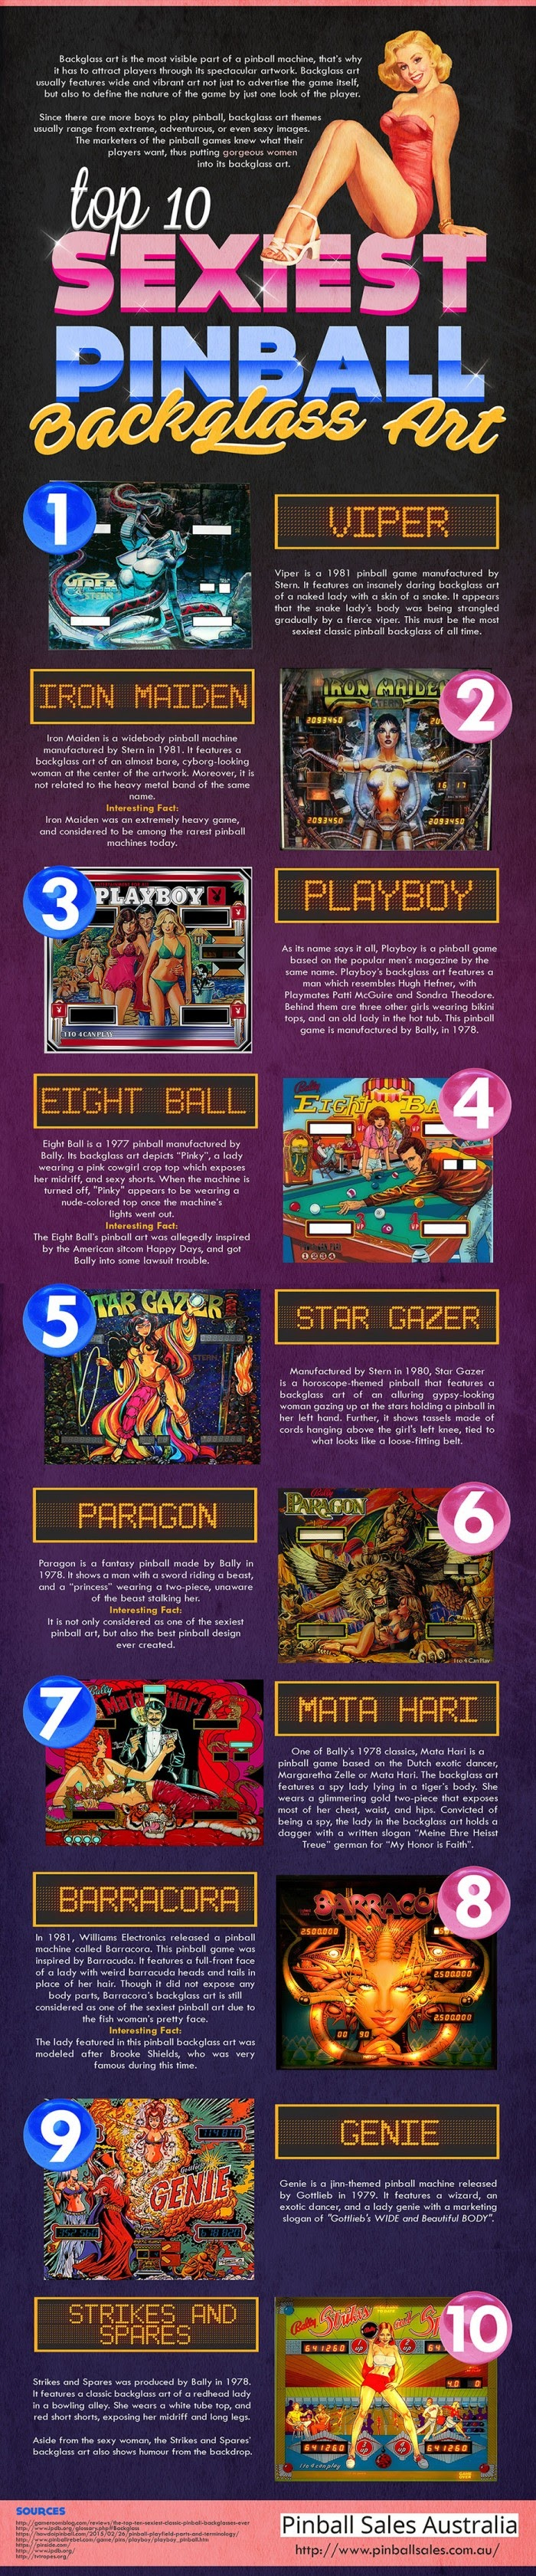 Top 10 Sexiest backglass art in Pinball #infographic